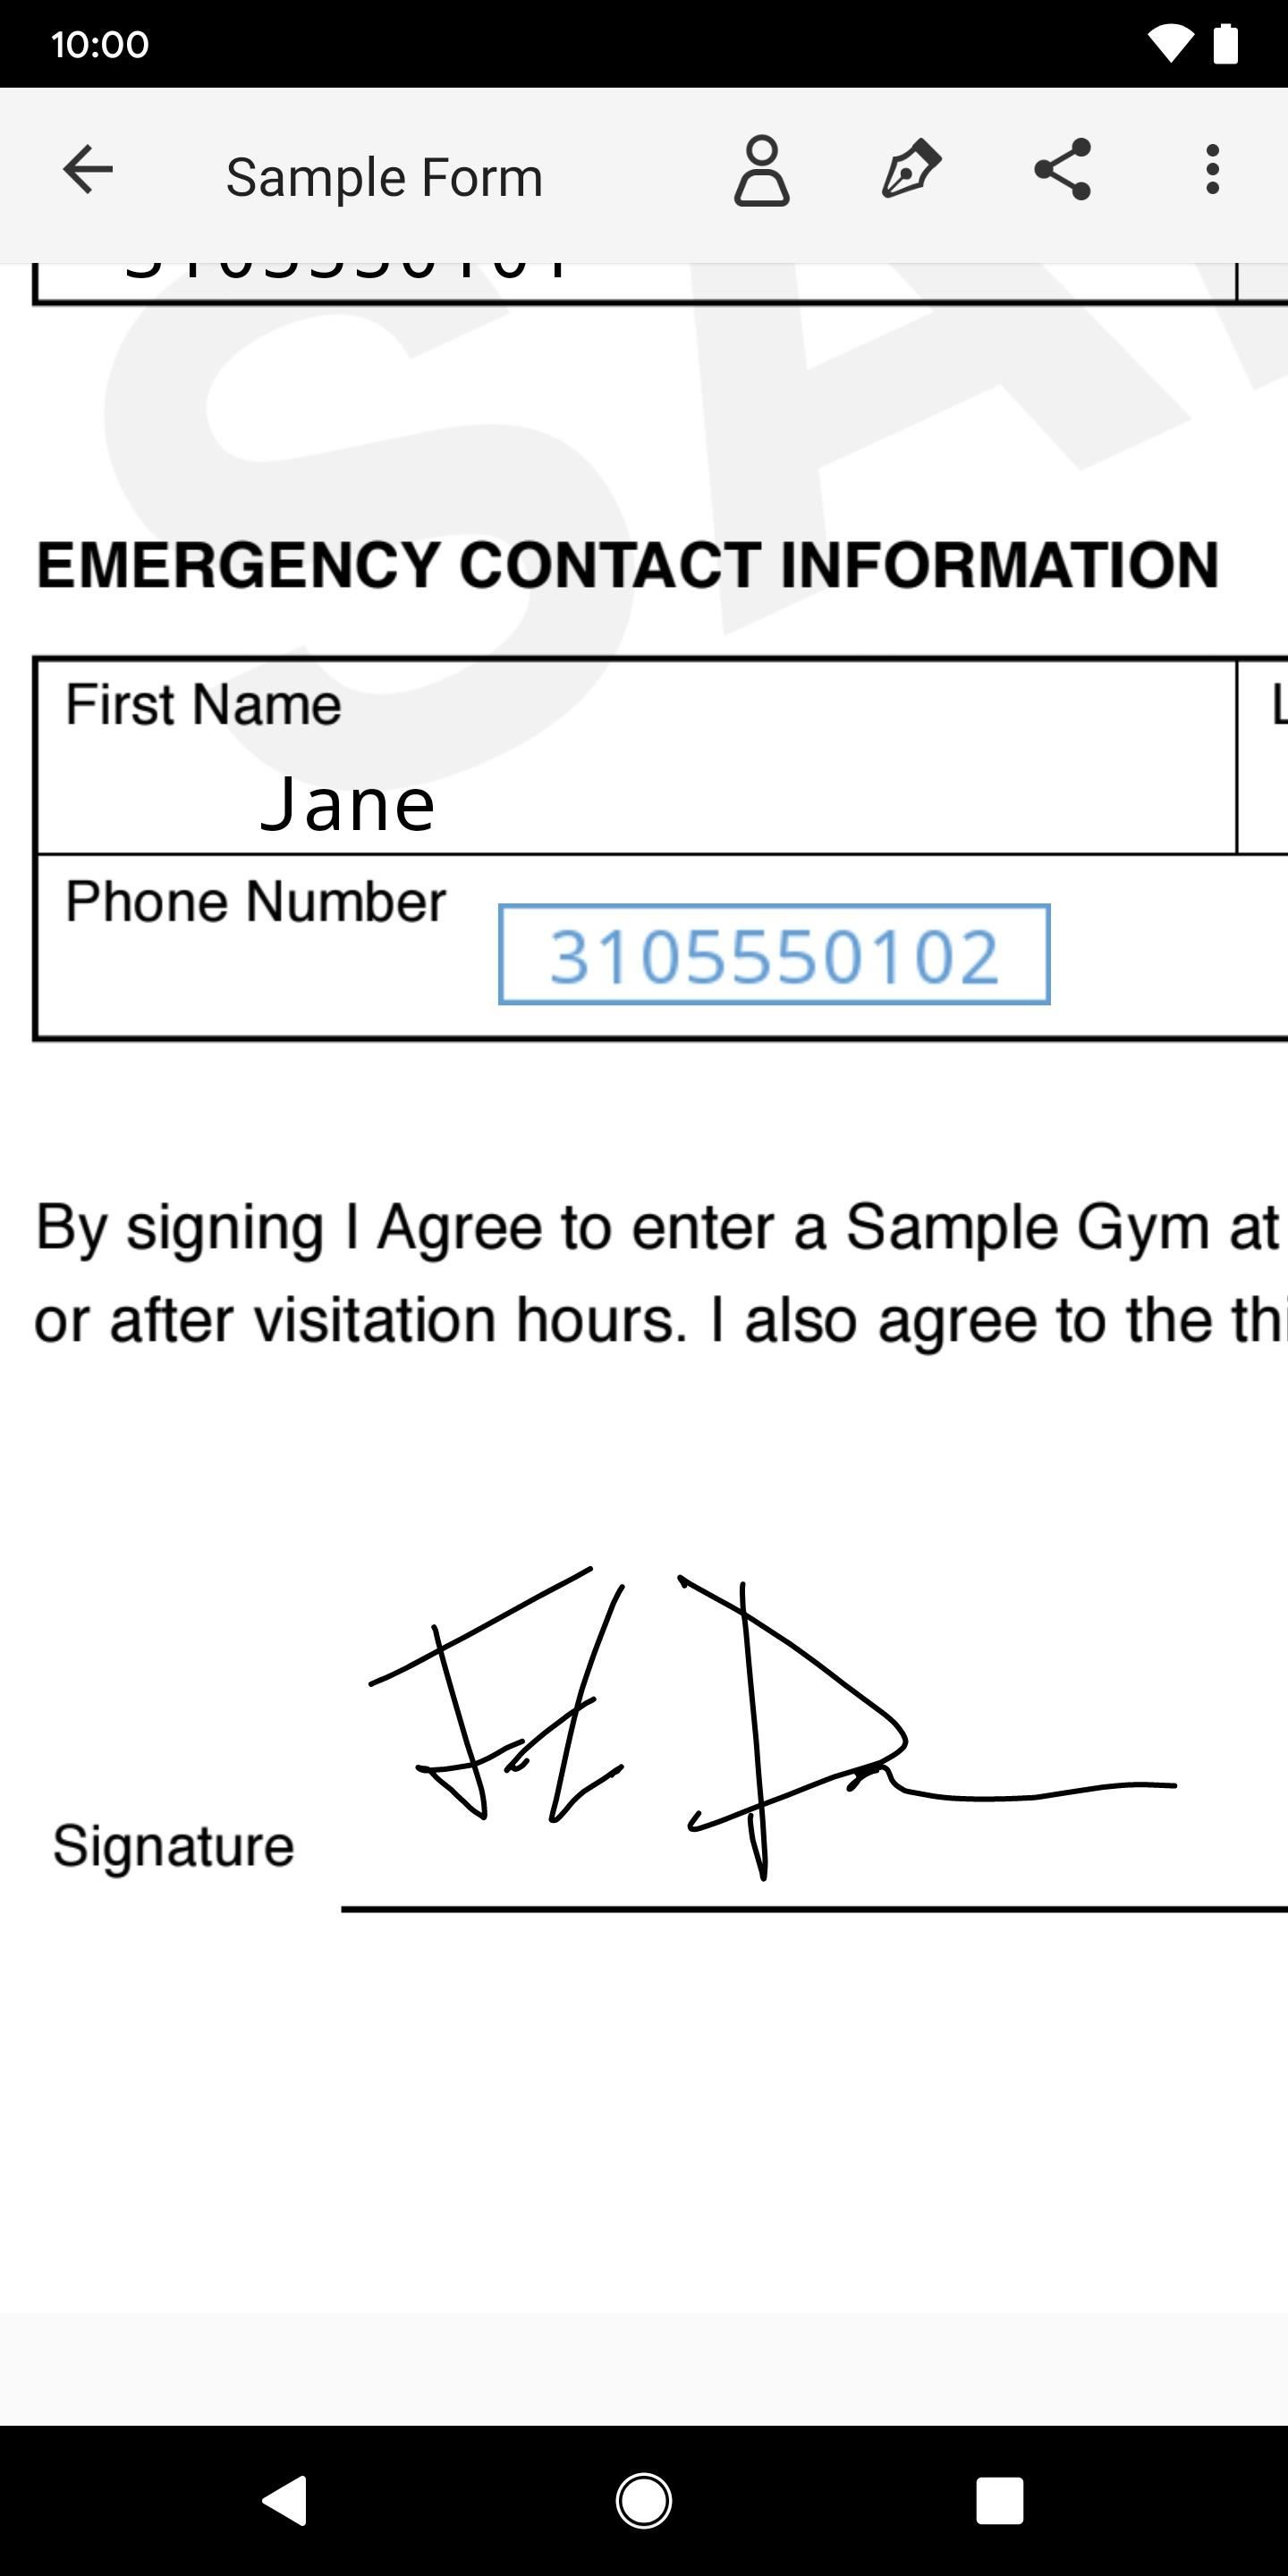 Use Adobe Fill & Sign to electronically fill and sign important forms Android or iOS